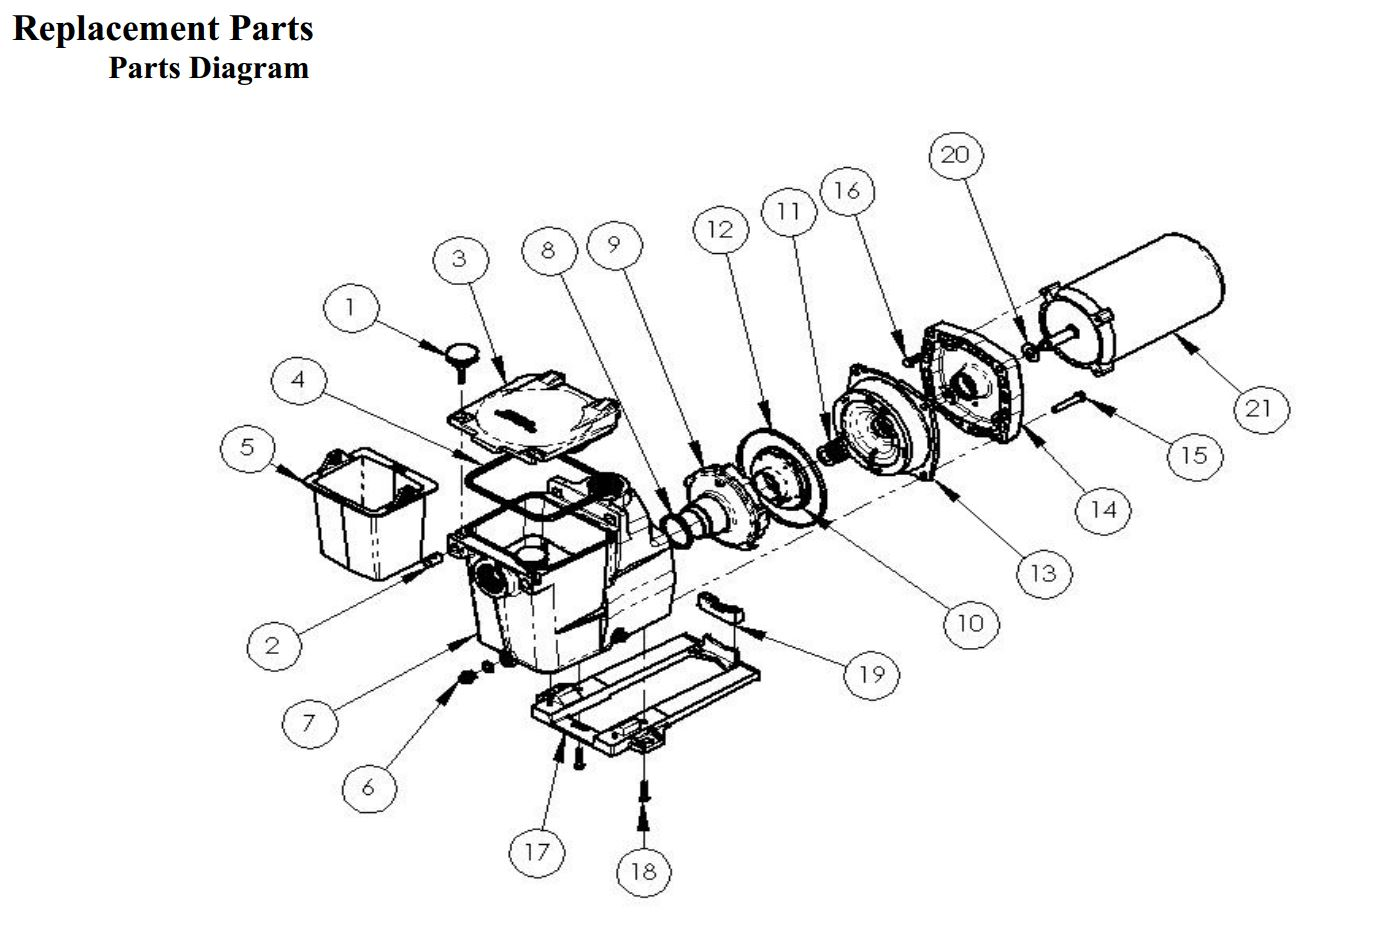 Hayward_Pump_ReplacementParts_WireDiagram._V359521762_ amazon com hayward sp2610x15 super pump 1 5 hp max rated single Hayward Pool Pumps 1.5 HP at webbmarketing.co